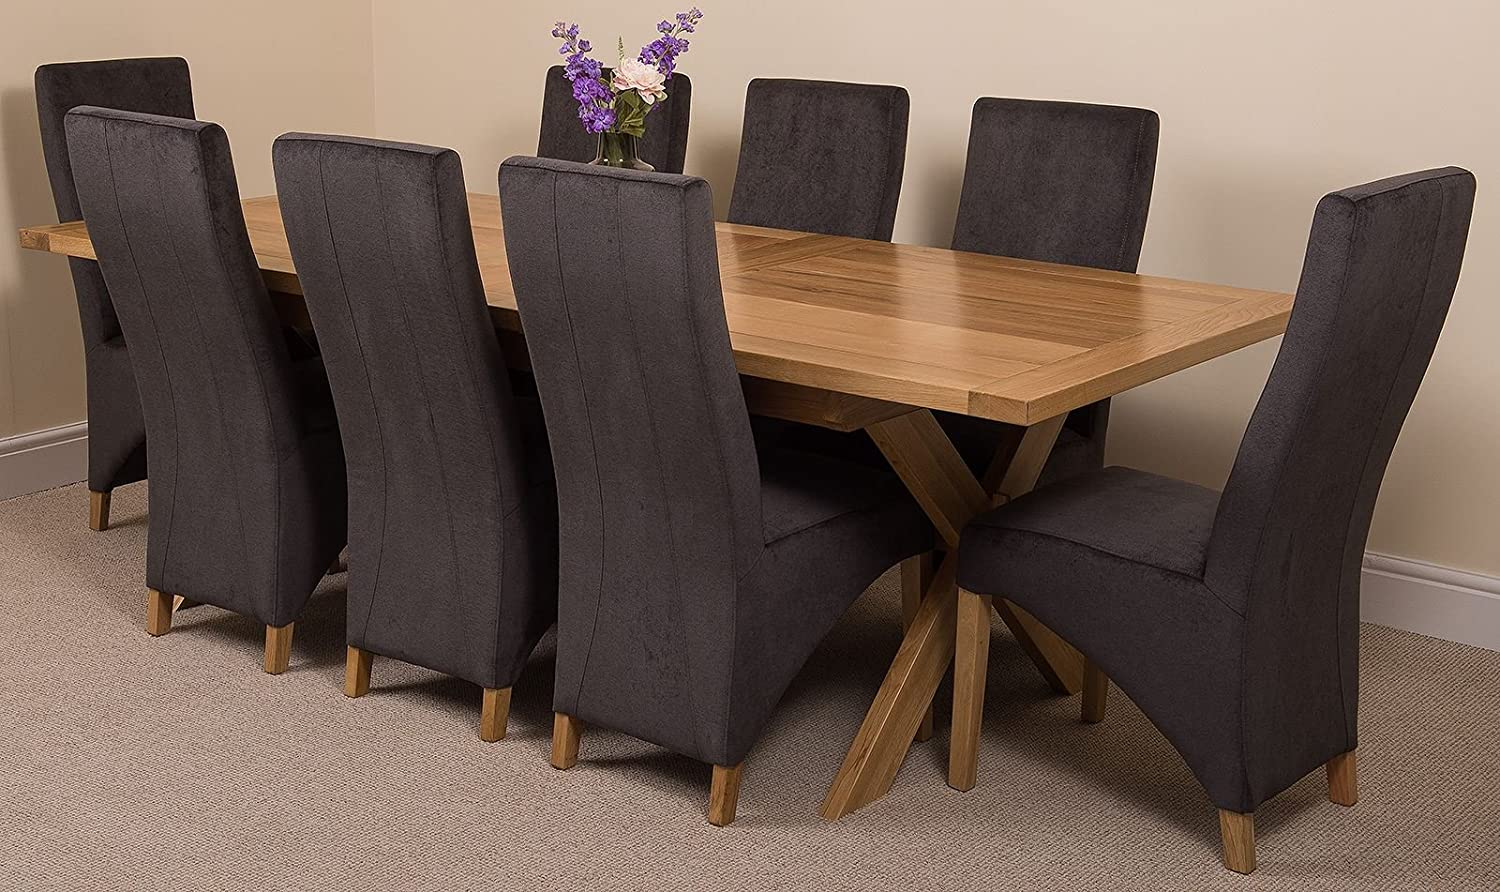 Modern furniture direct vermont extending kitchen solid oak dining set table 8 black fabric chairs amazon co uk kitchen home